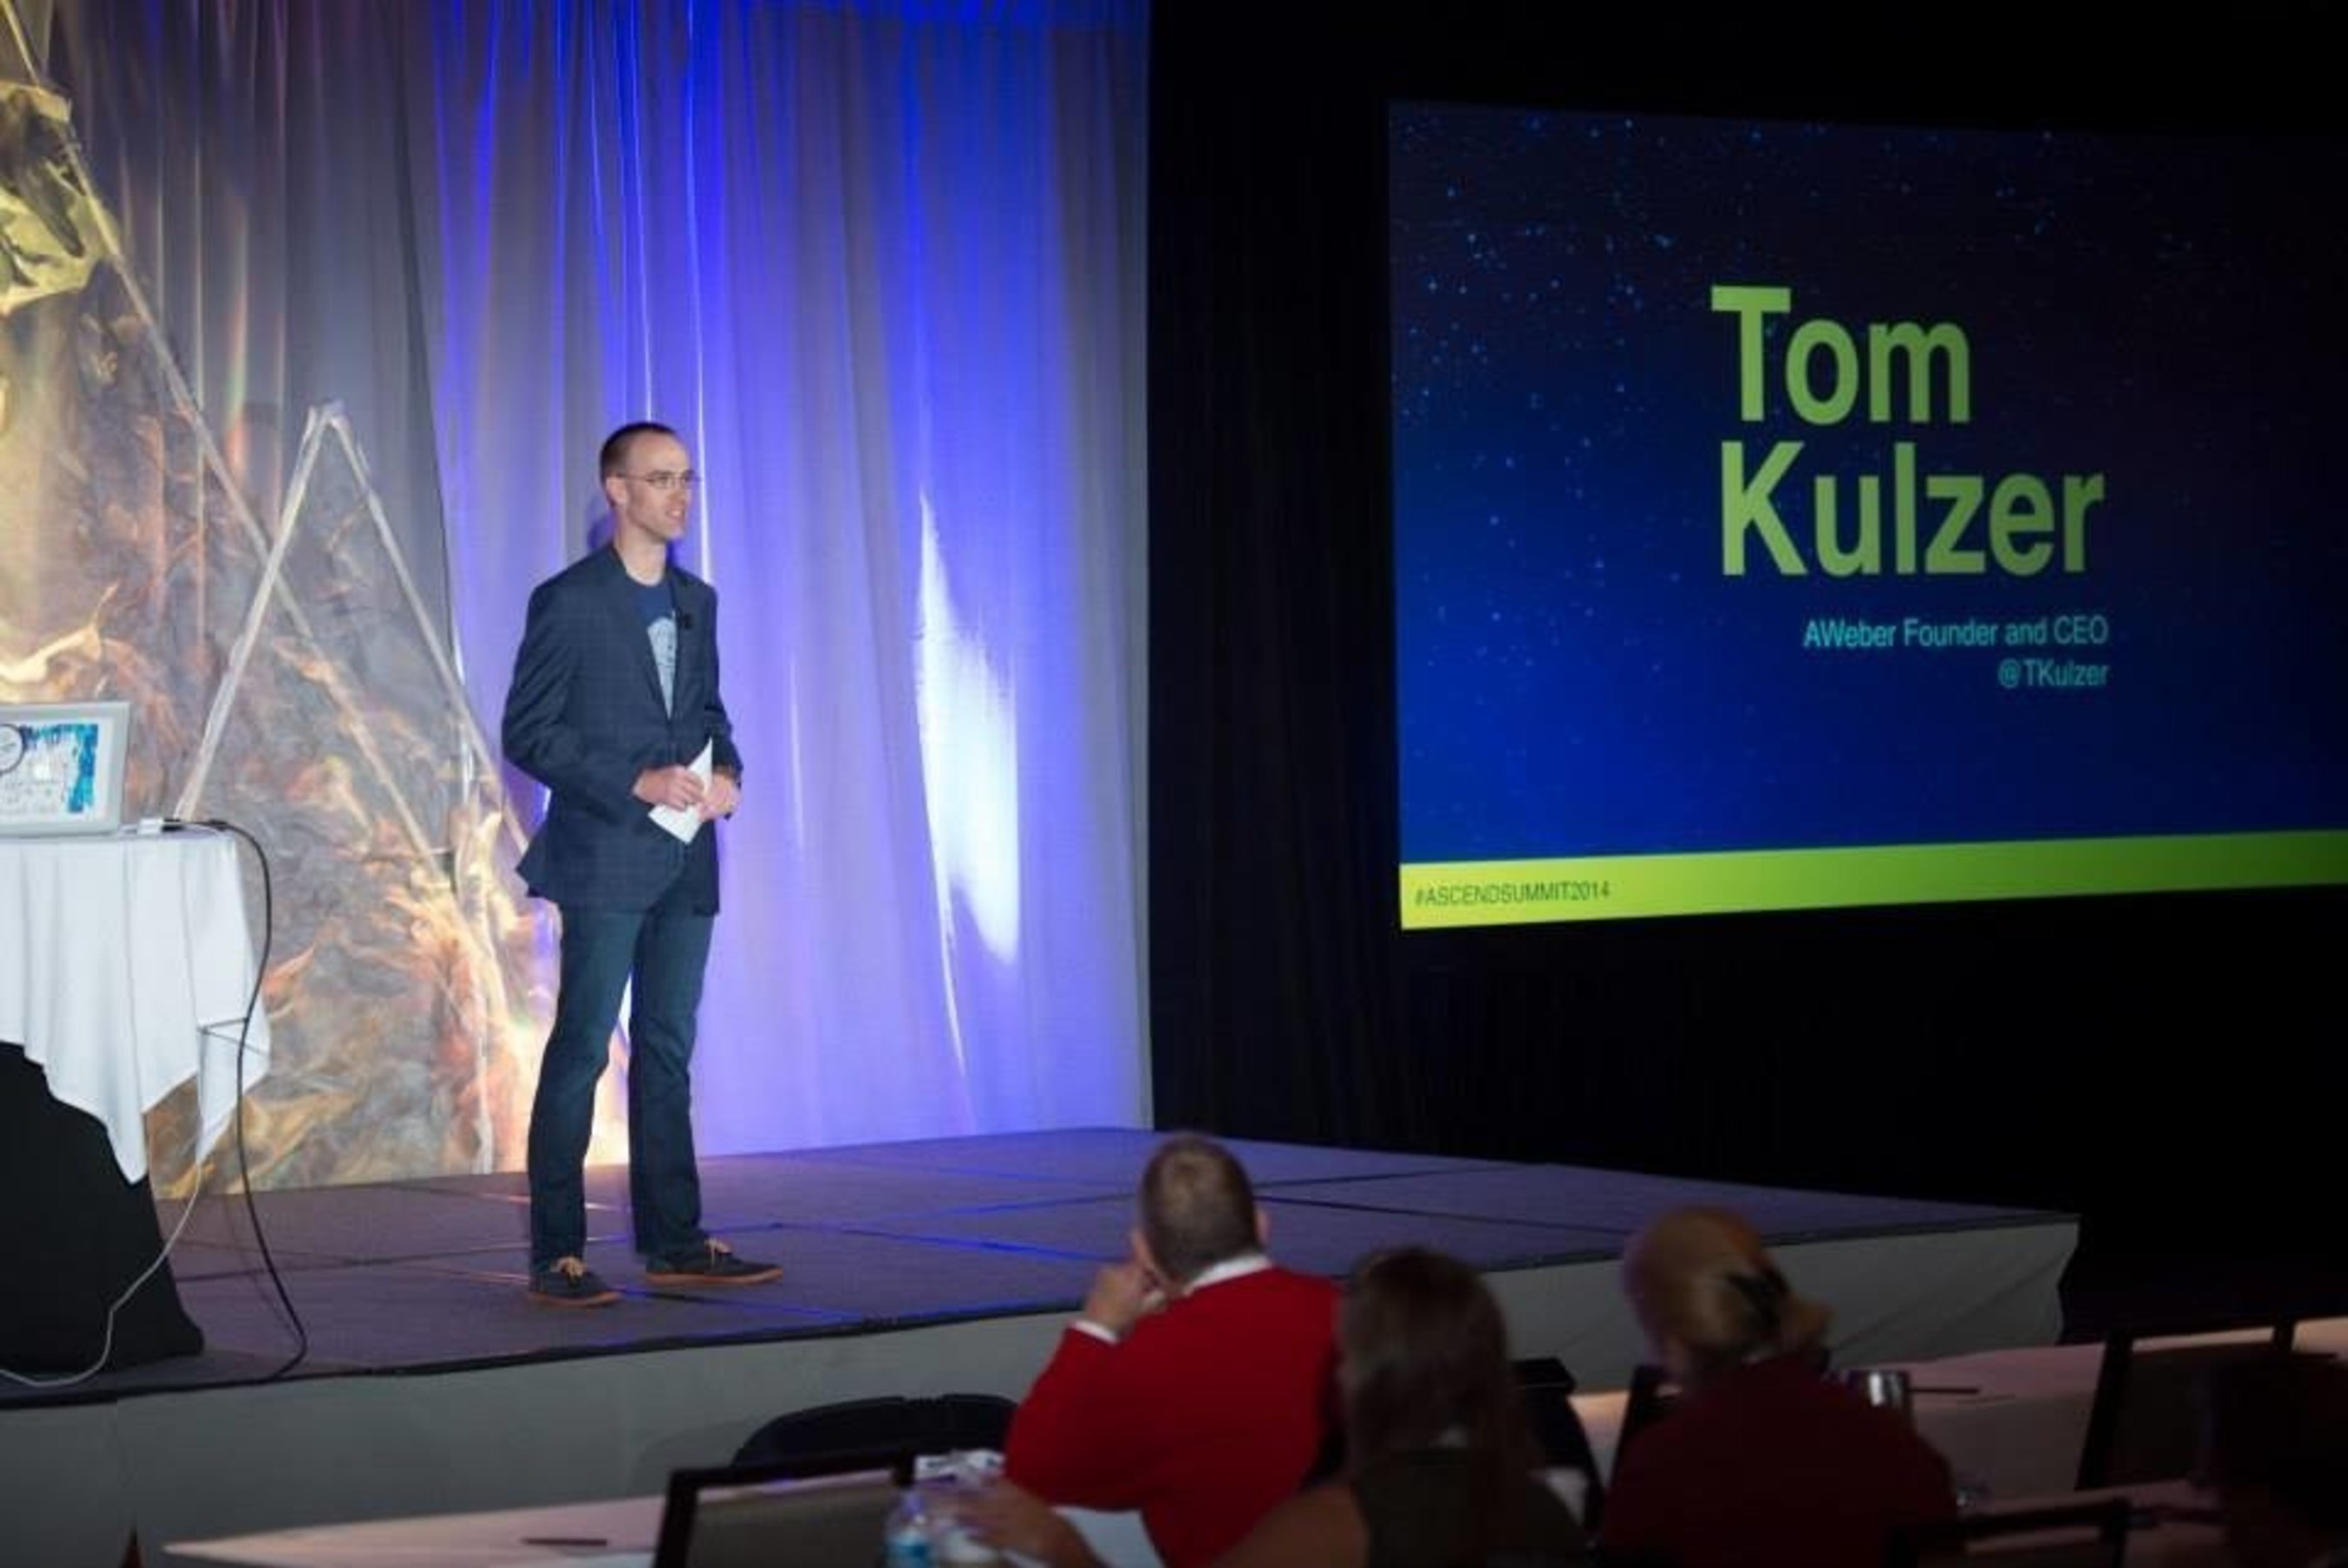 AWeber Founder and CEO Tom Kulzer welcomes attendees to ASCEND Digital Marketing Summit 2014